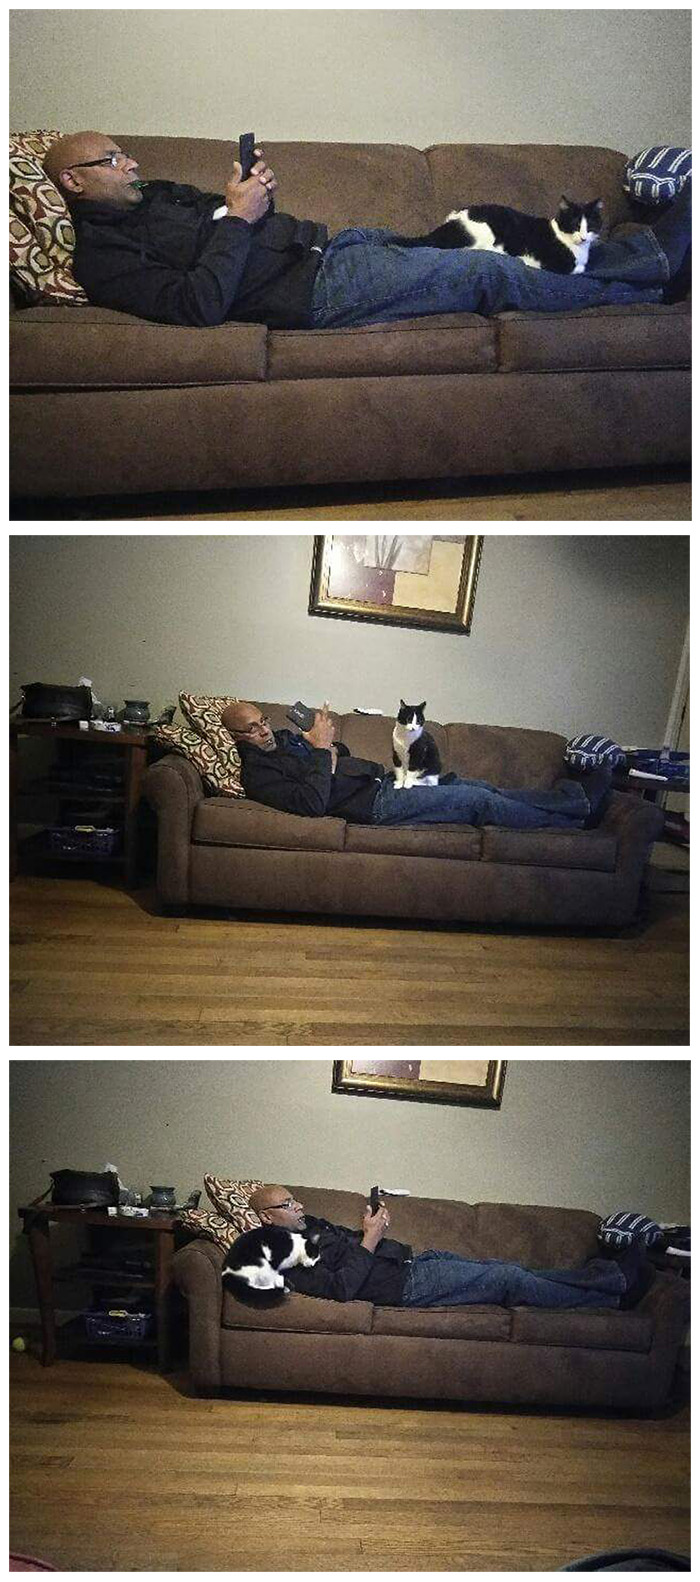 People Who Didn't Want Cats Father Lying on Couch with Cat